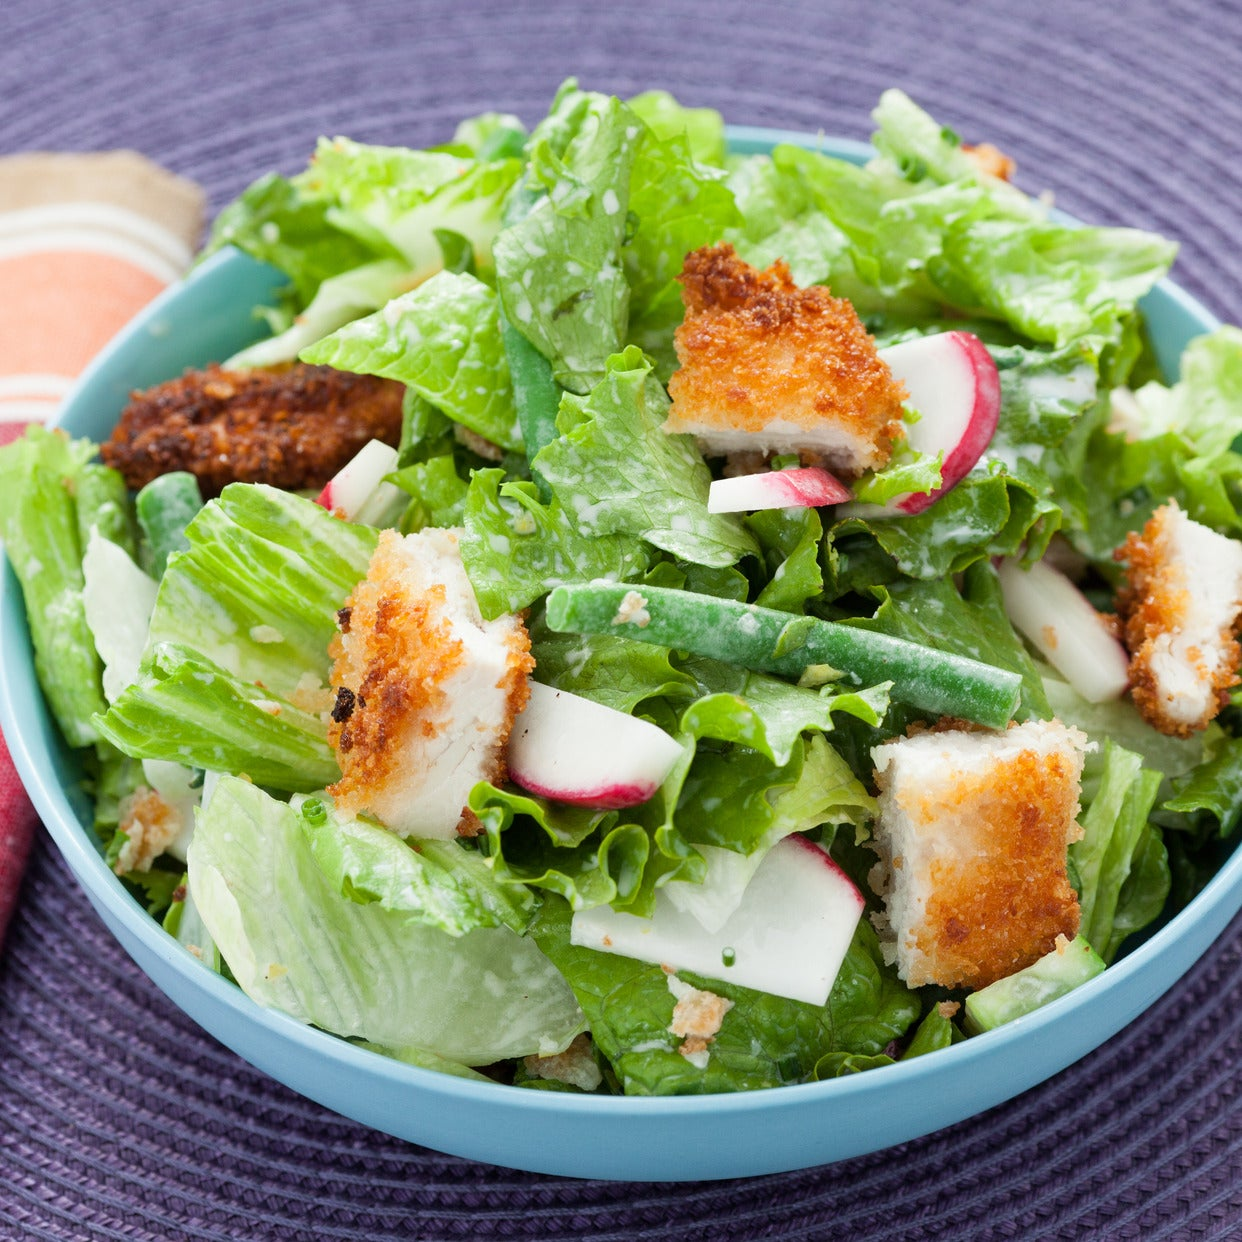 Crispy Chicken Chopped Salad with Creamy Buttermilk Dressing